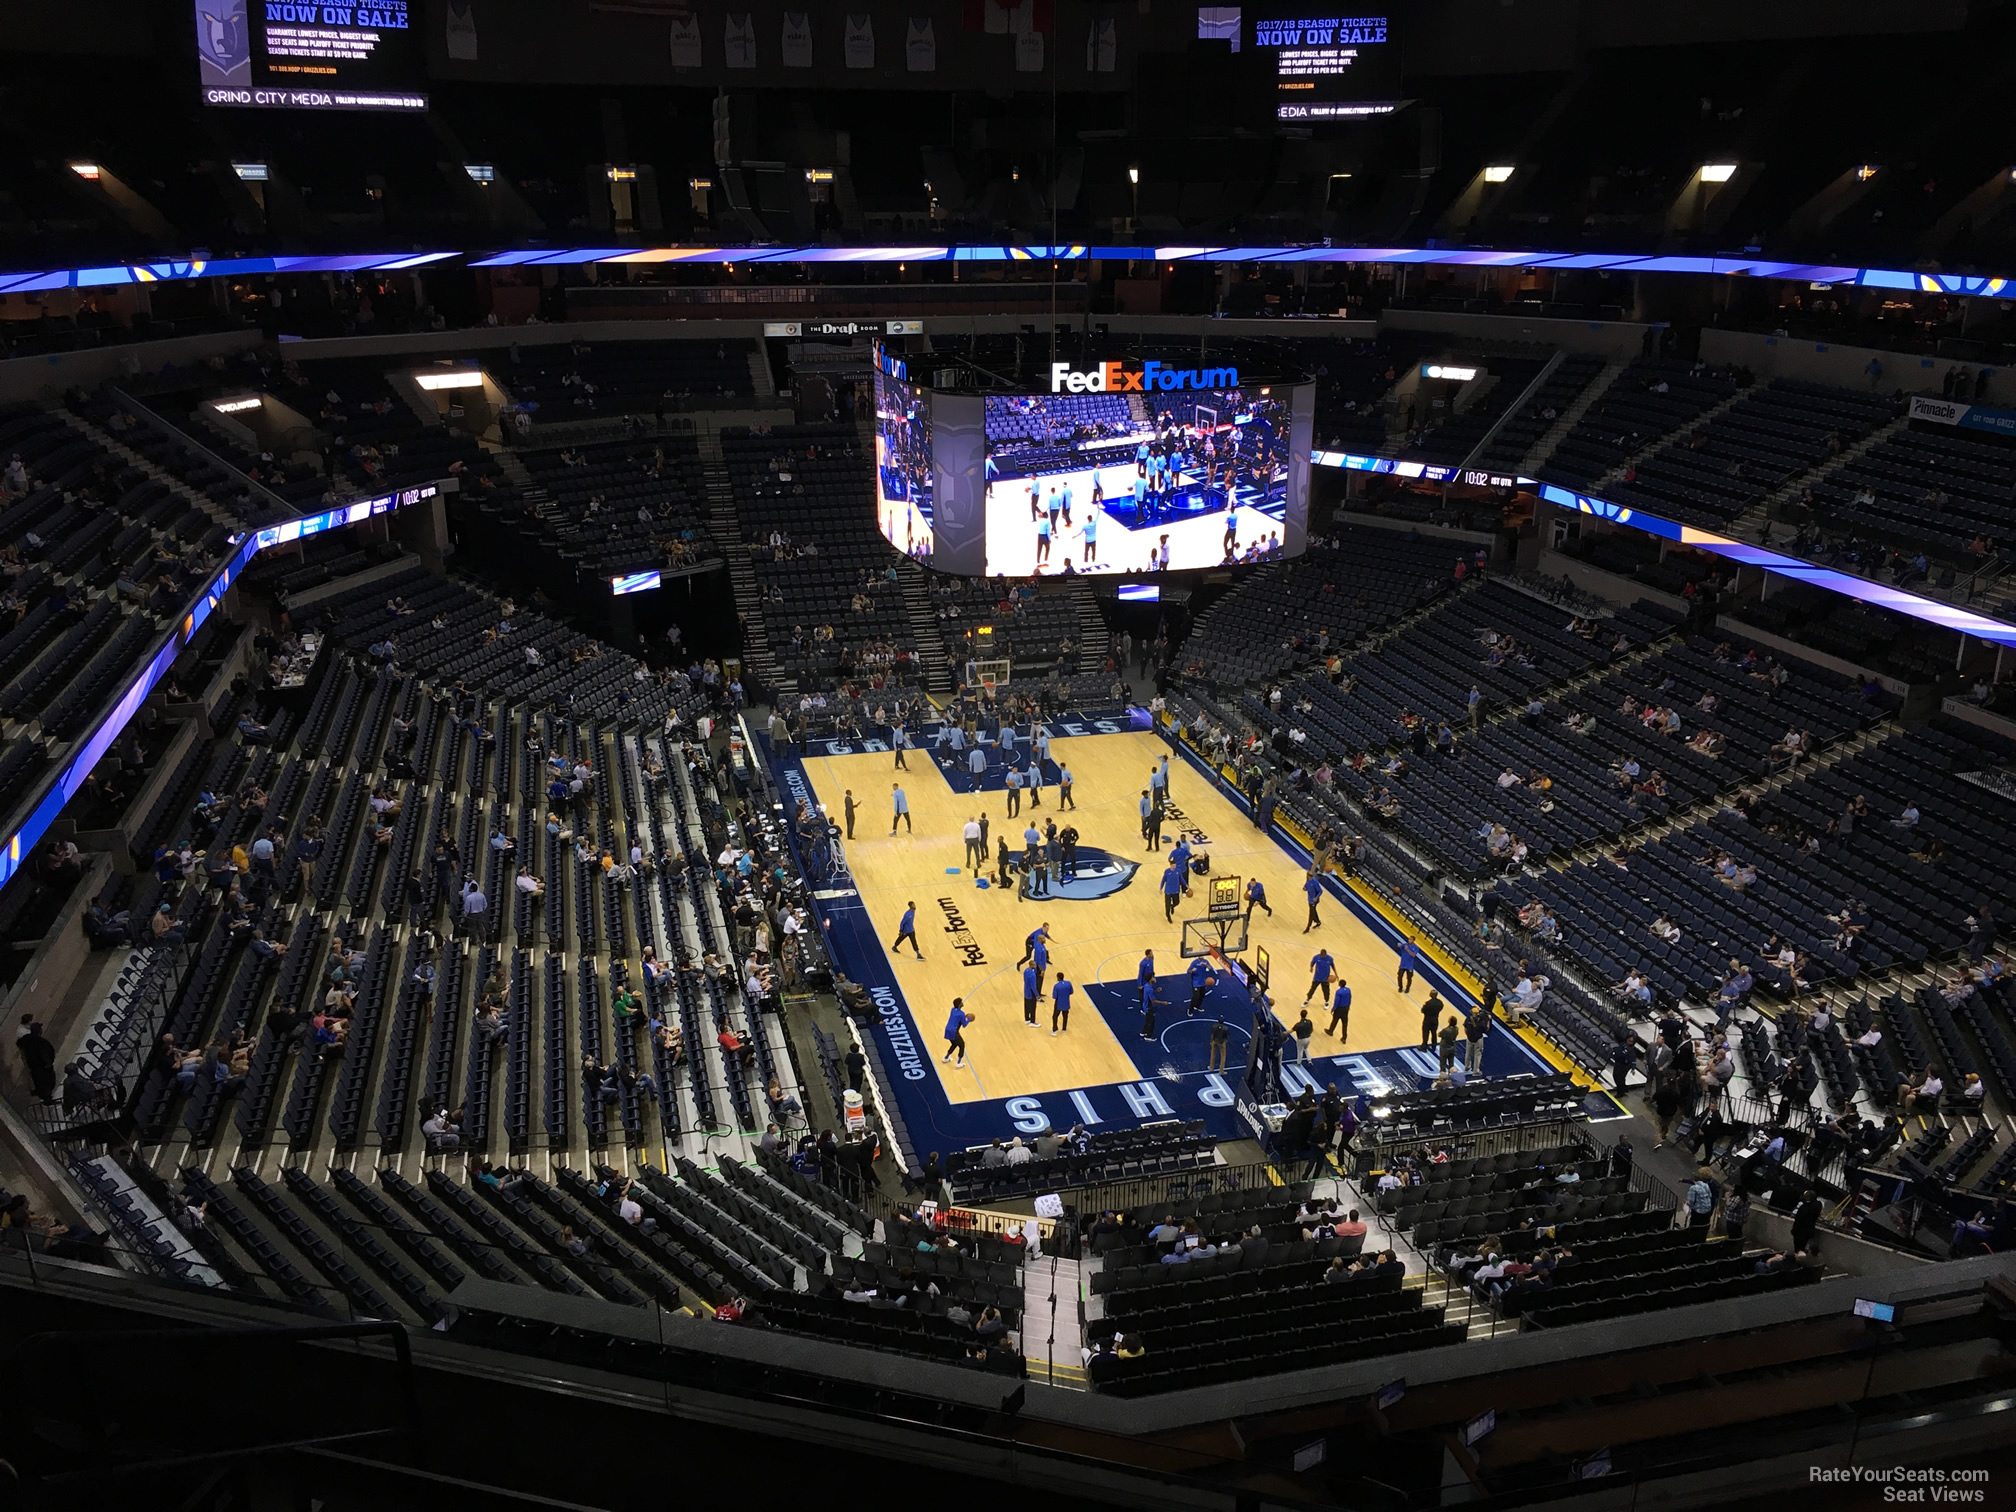 Seat View for FedEx Forum Section 215, Row F